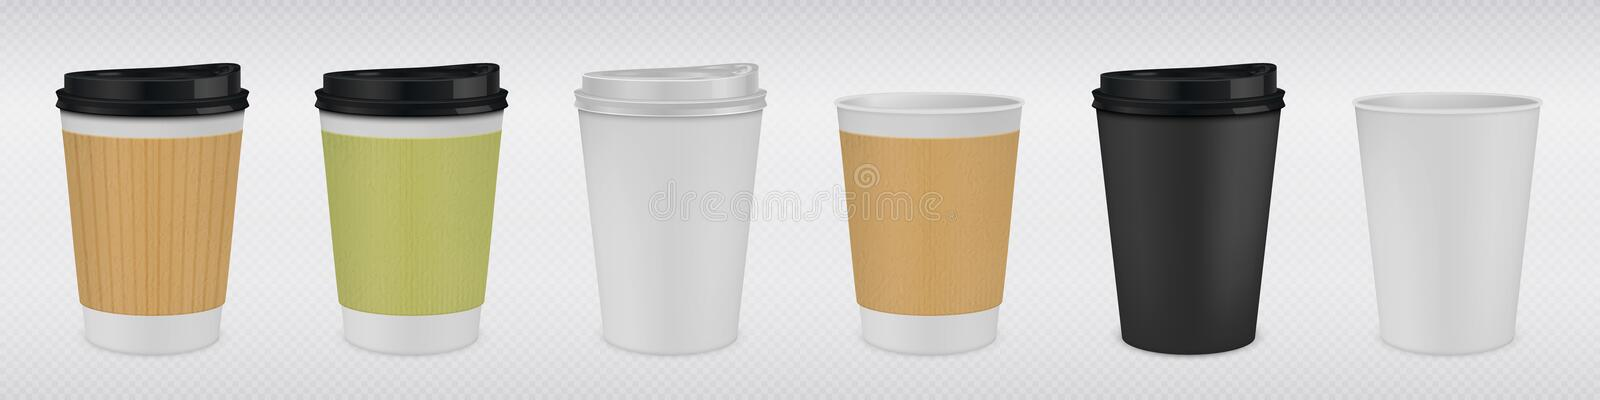 Realistic paper coffee cup. White and brown 3D mug mock up for hot drinks on transparent background. Vector plastic tea vector illustration